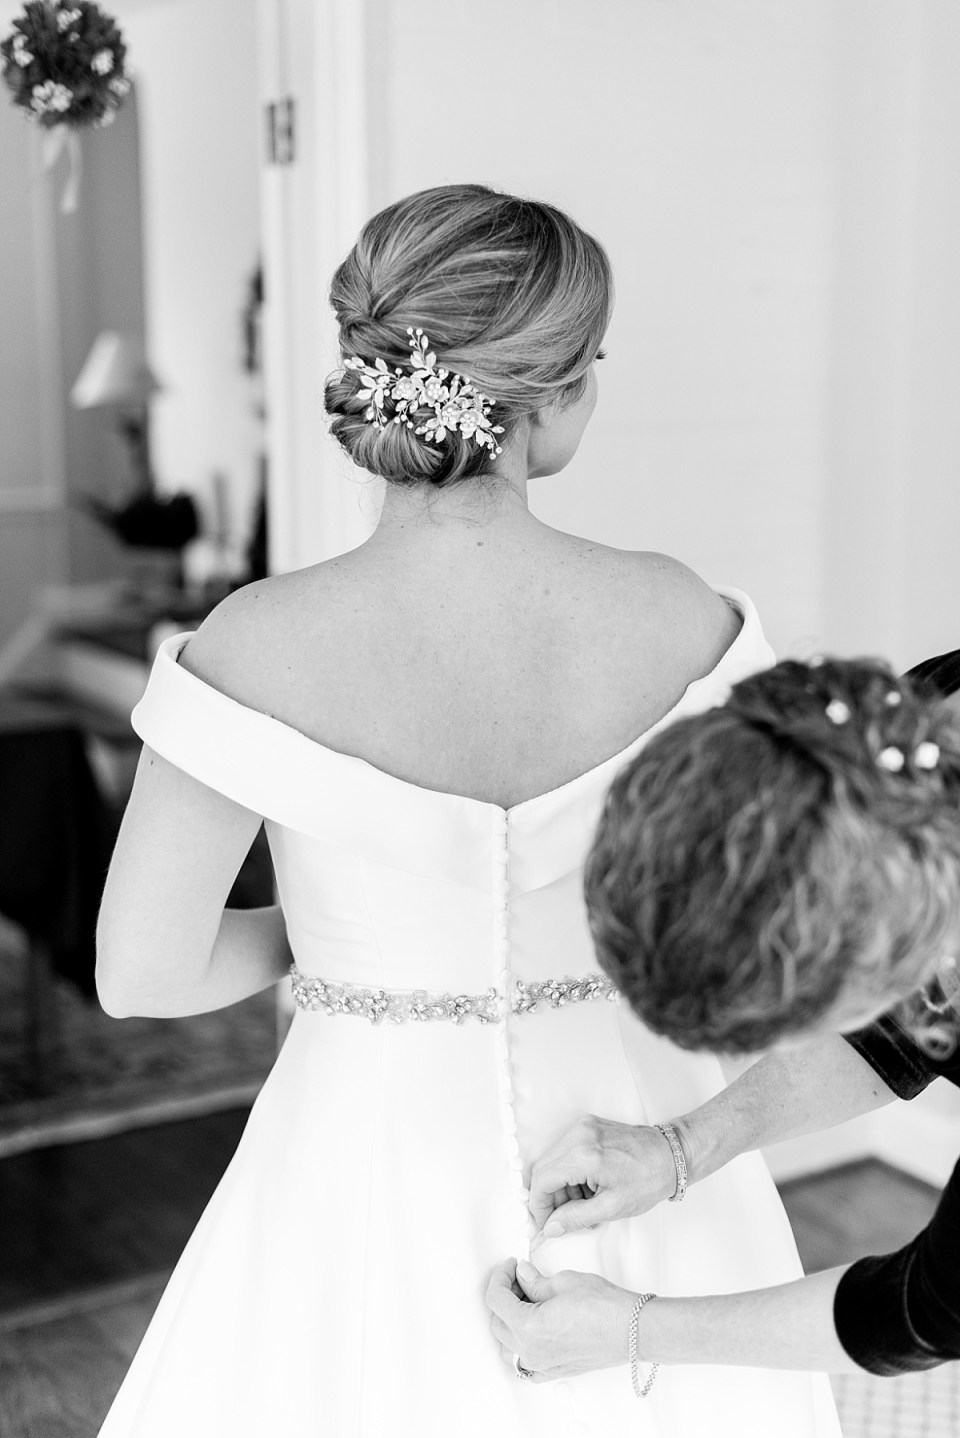 Bride Getting Ready for Blessed Sacrament Wedding in Chevy Chase, MD